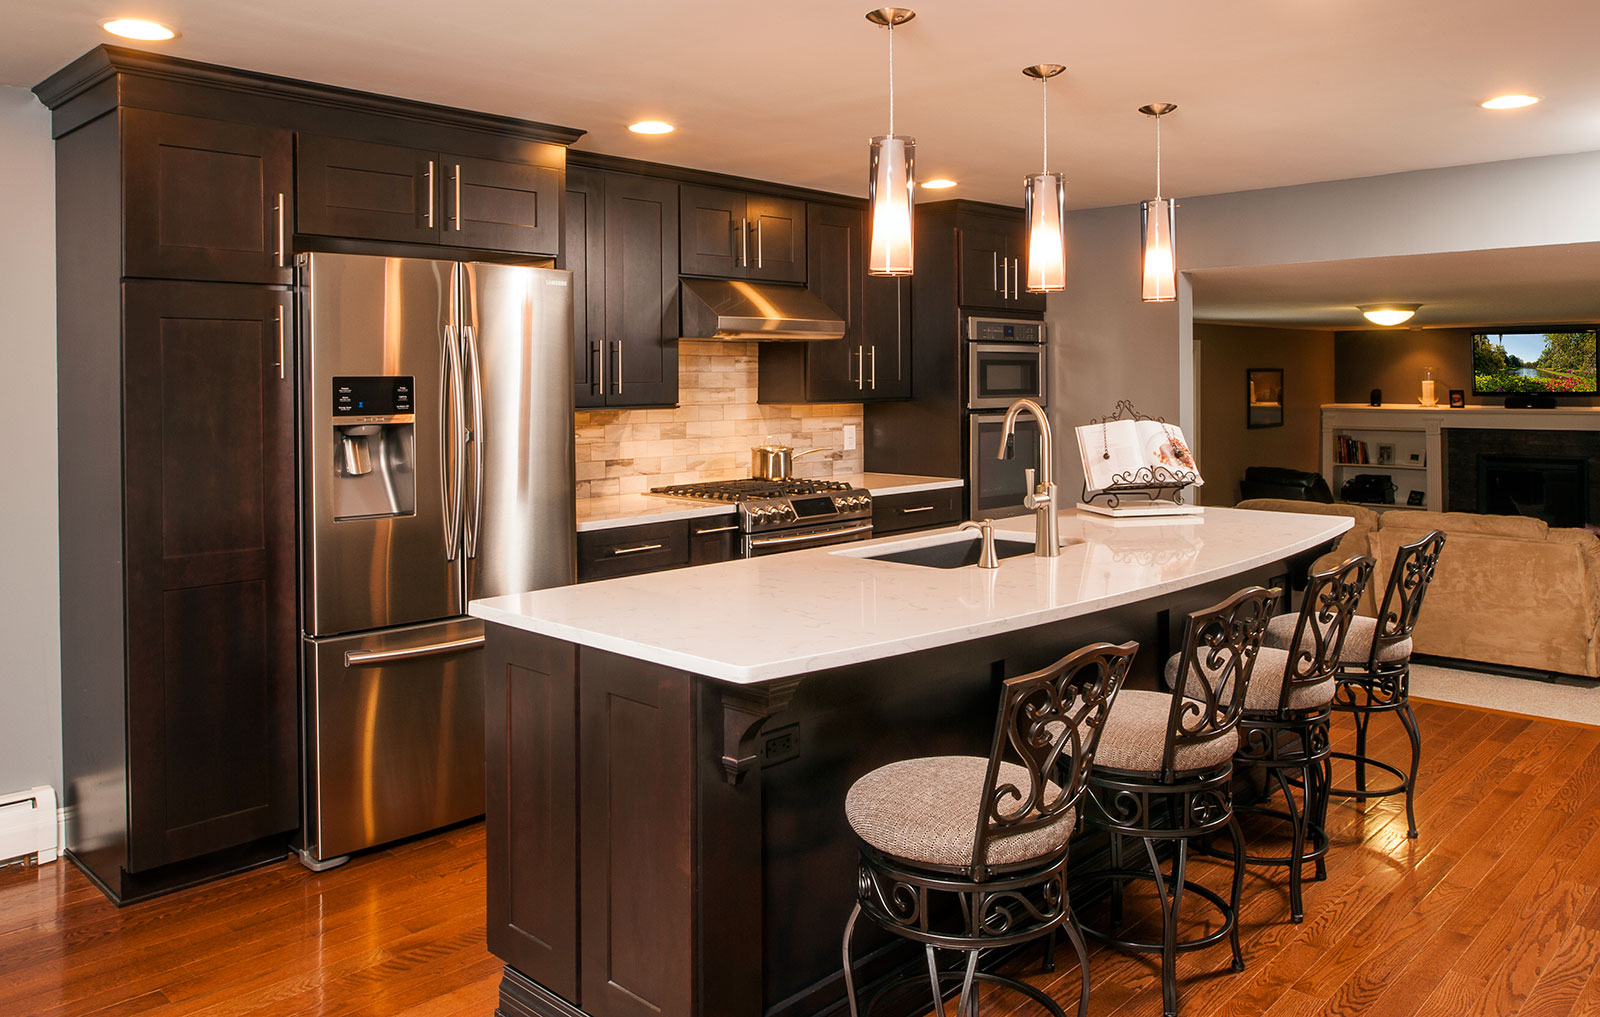 Buffalo NY Kitchen Remodel and Kitchen Appliances